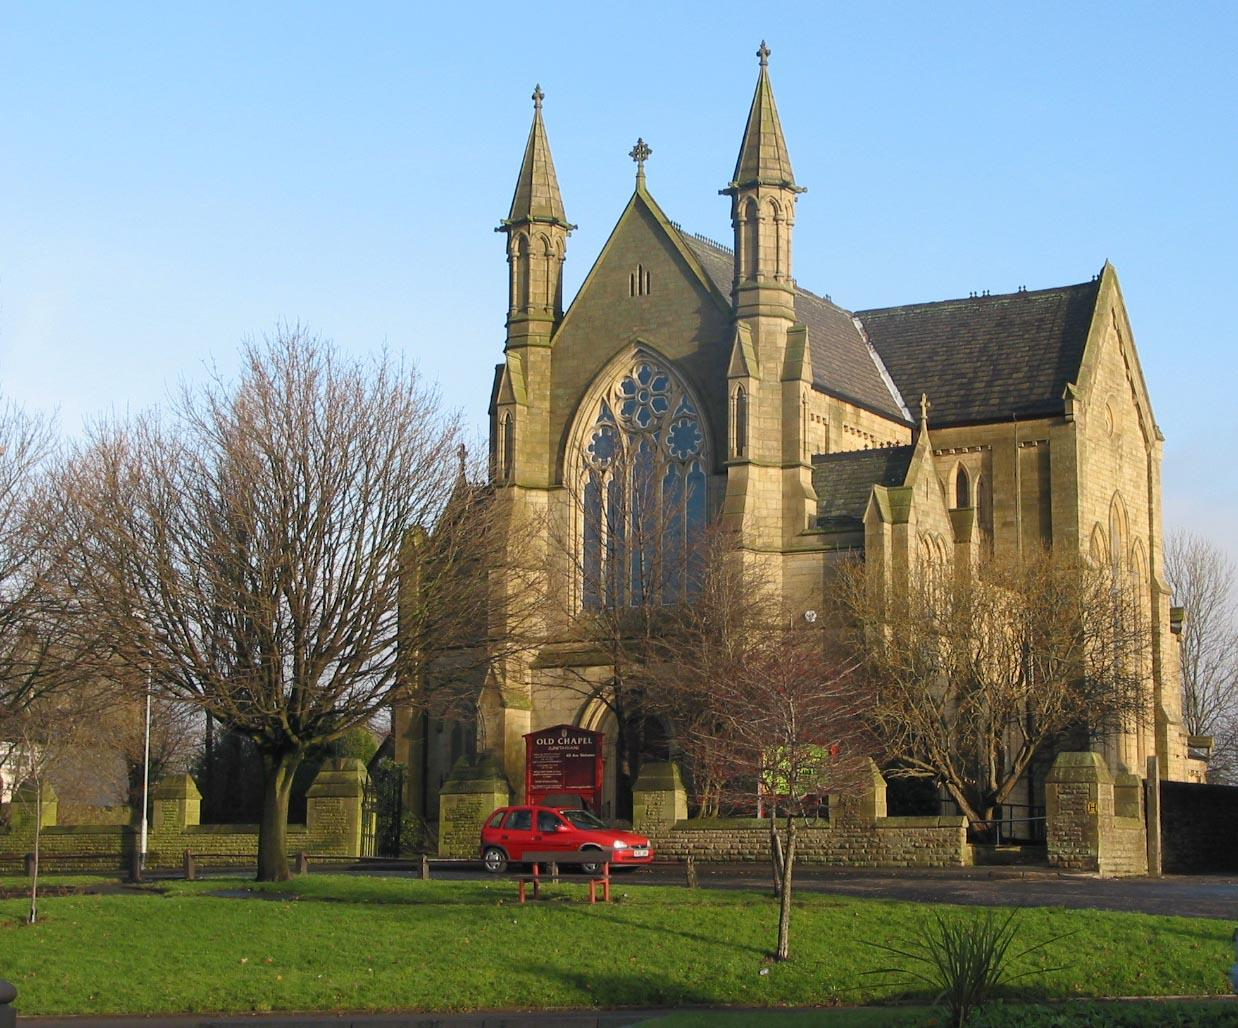 Download - Old Chapel Dukinfield